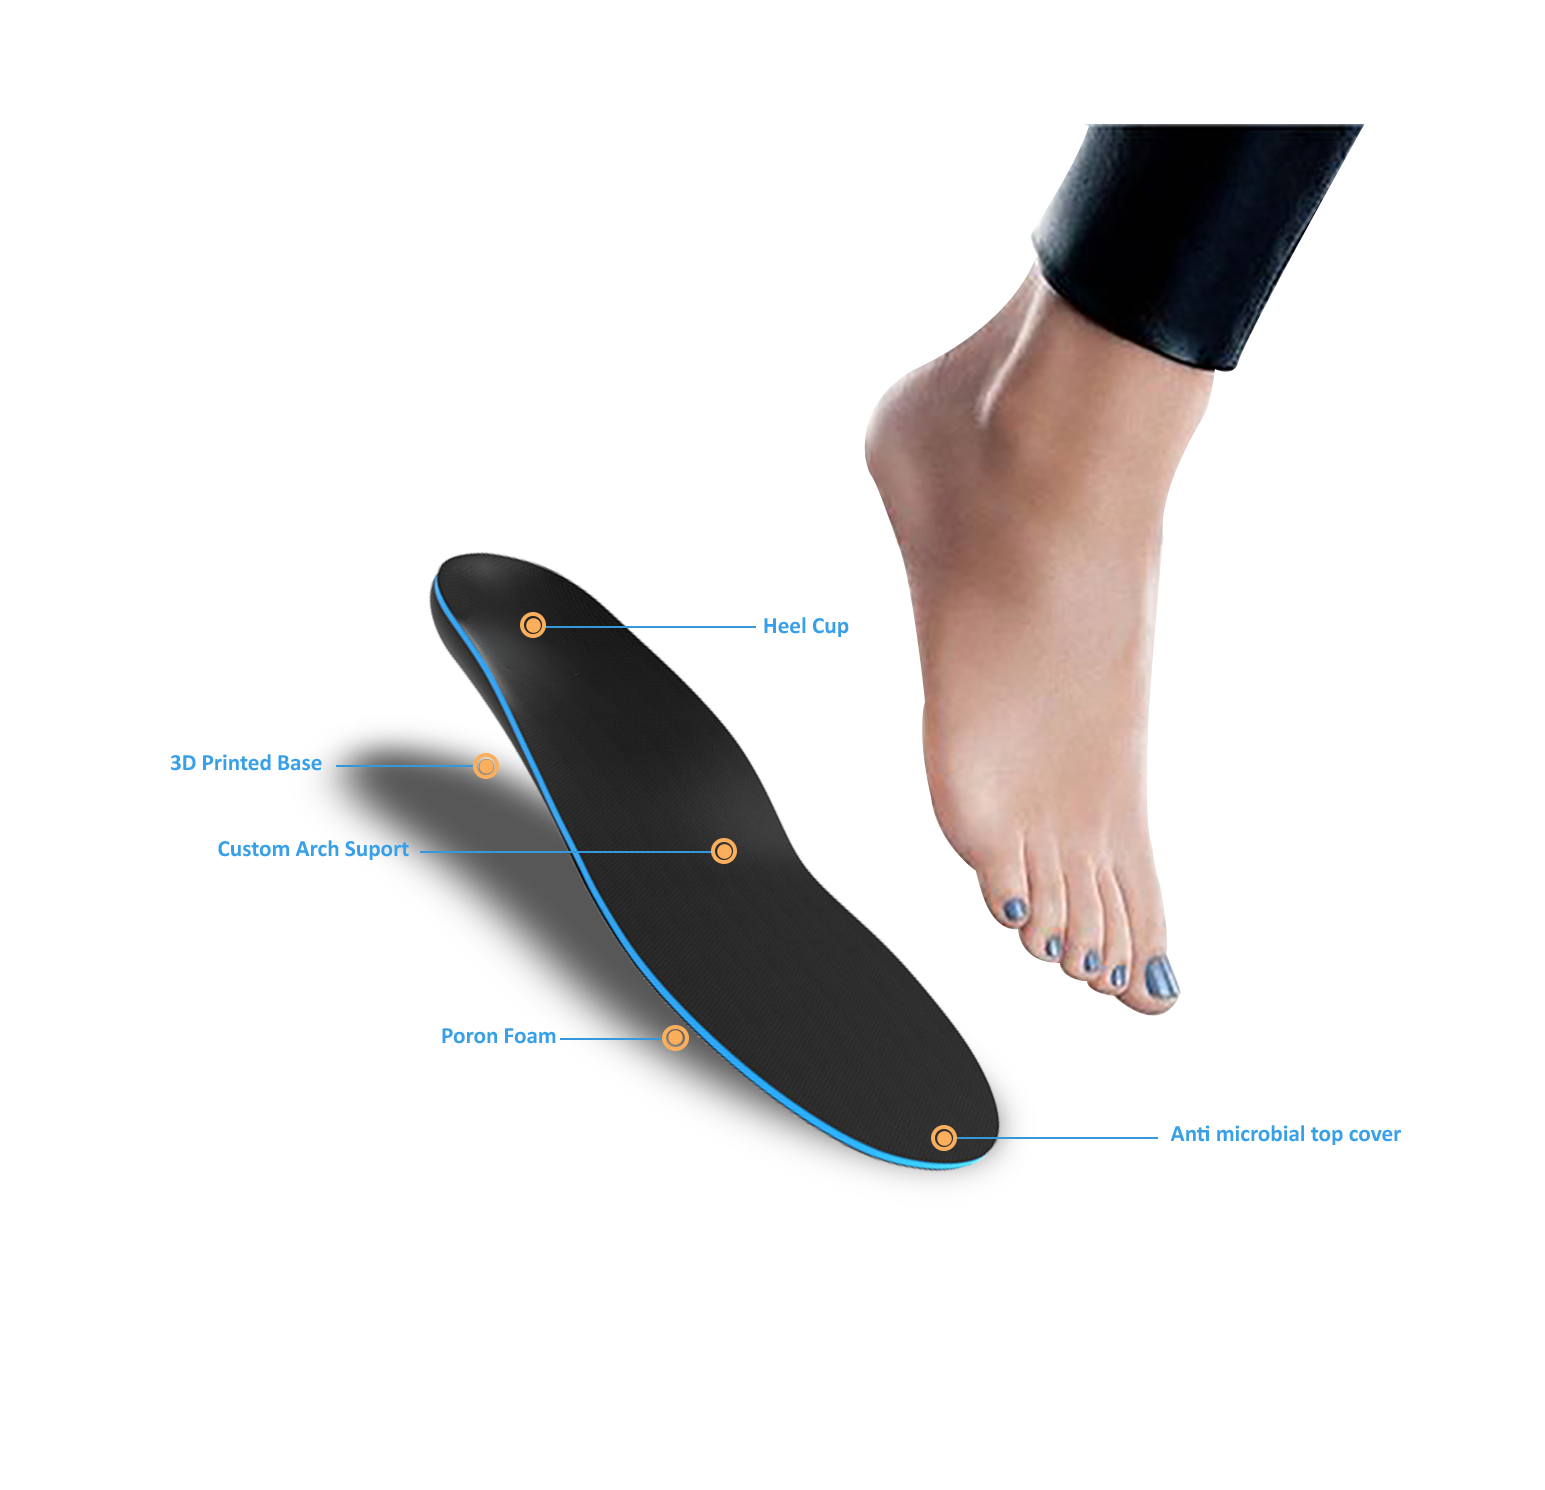 Shapecrunch Insoles for running and performance